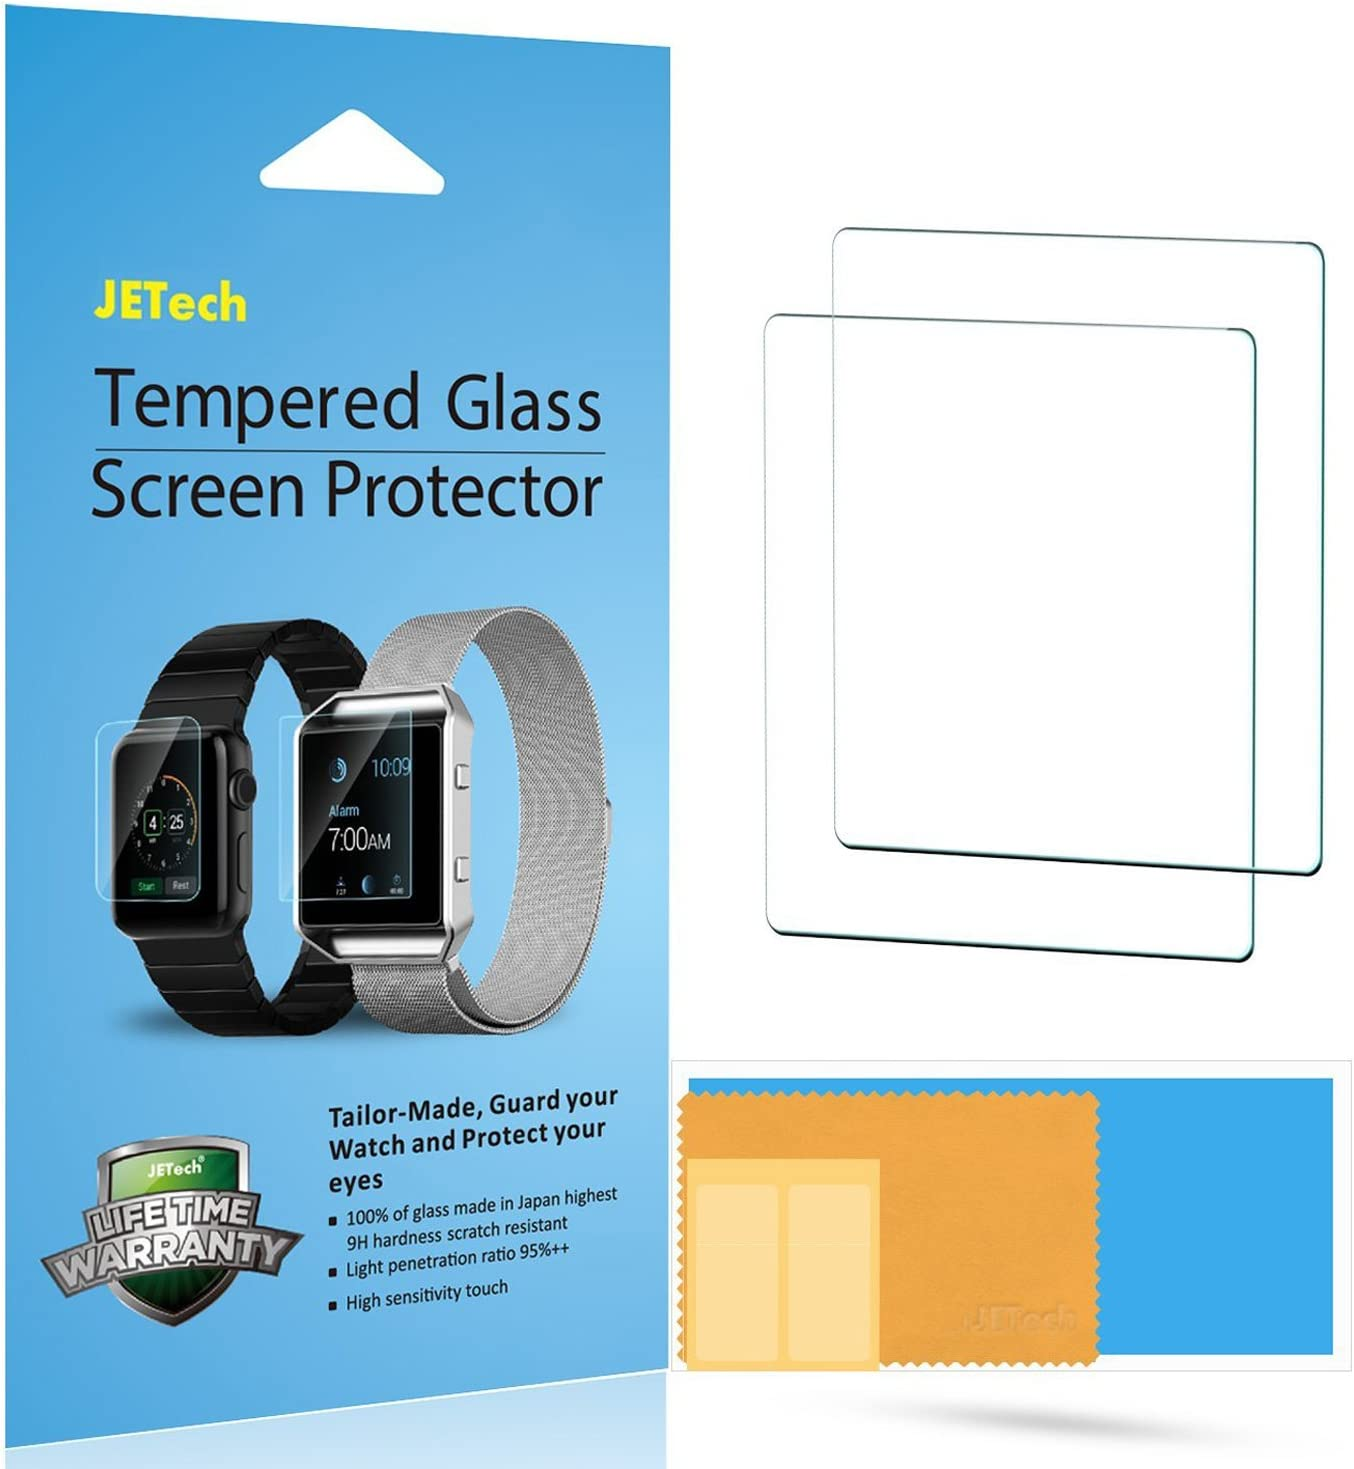 JETech 2-Pack Screen Protector for Apple Watch 38mm Series 1 2 3, NOT Series 4/5, Tempered Glass